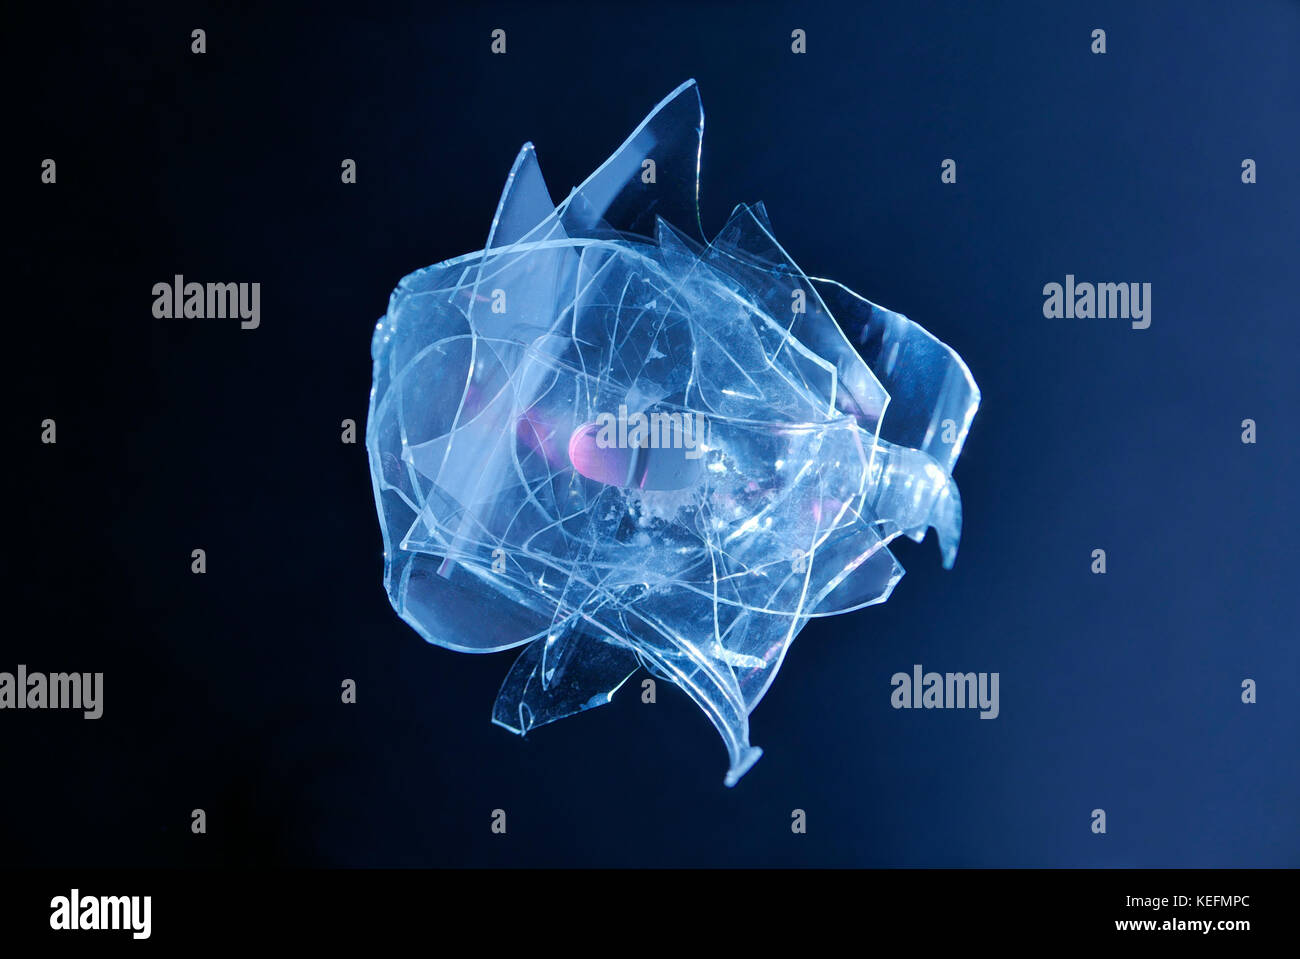 Side effects of drugs, red pill on broken rose shaped glass with dark blue background Stock Photo